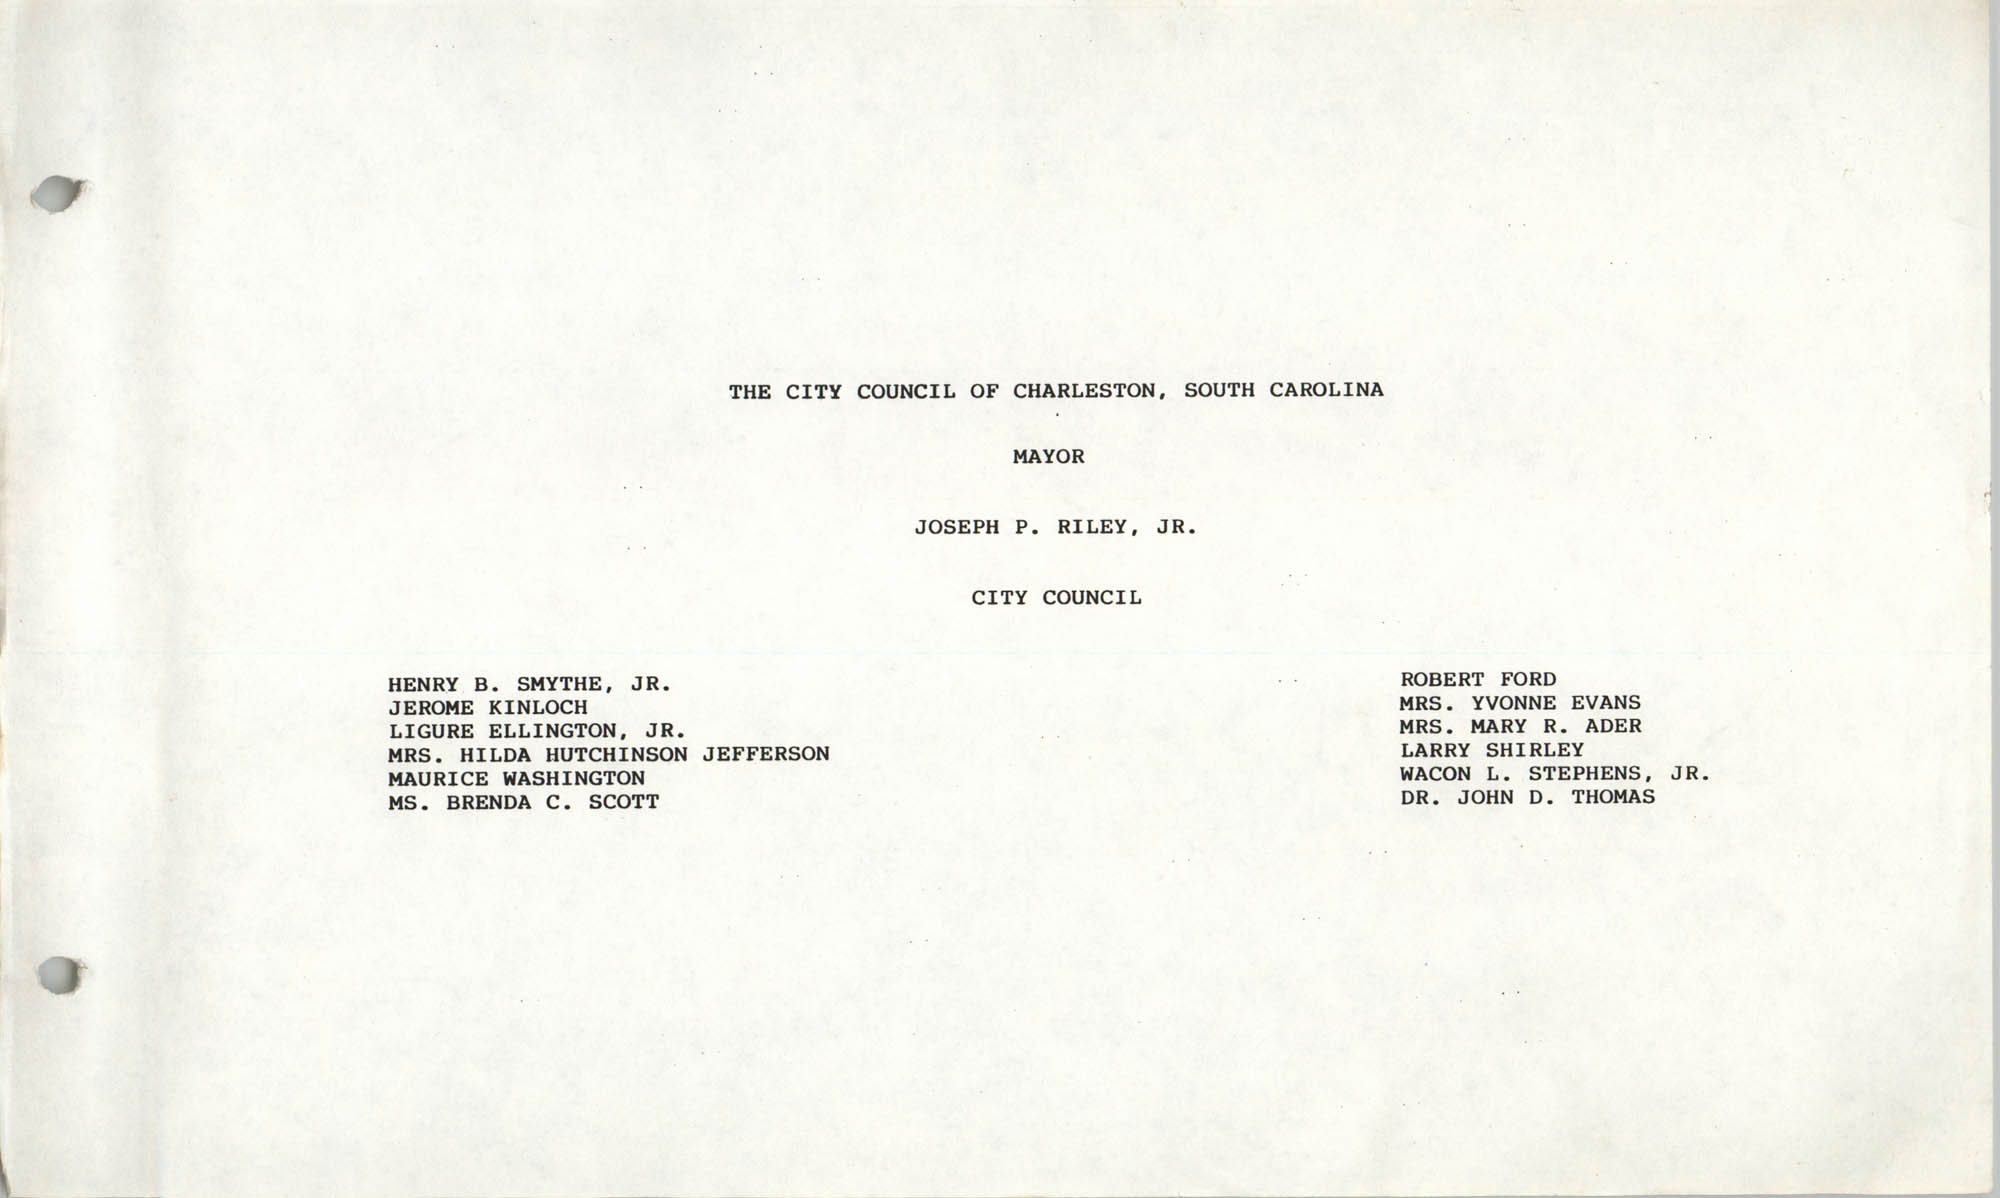 The City Council of Charleston, South Carolina, 1993 Budget